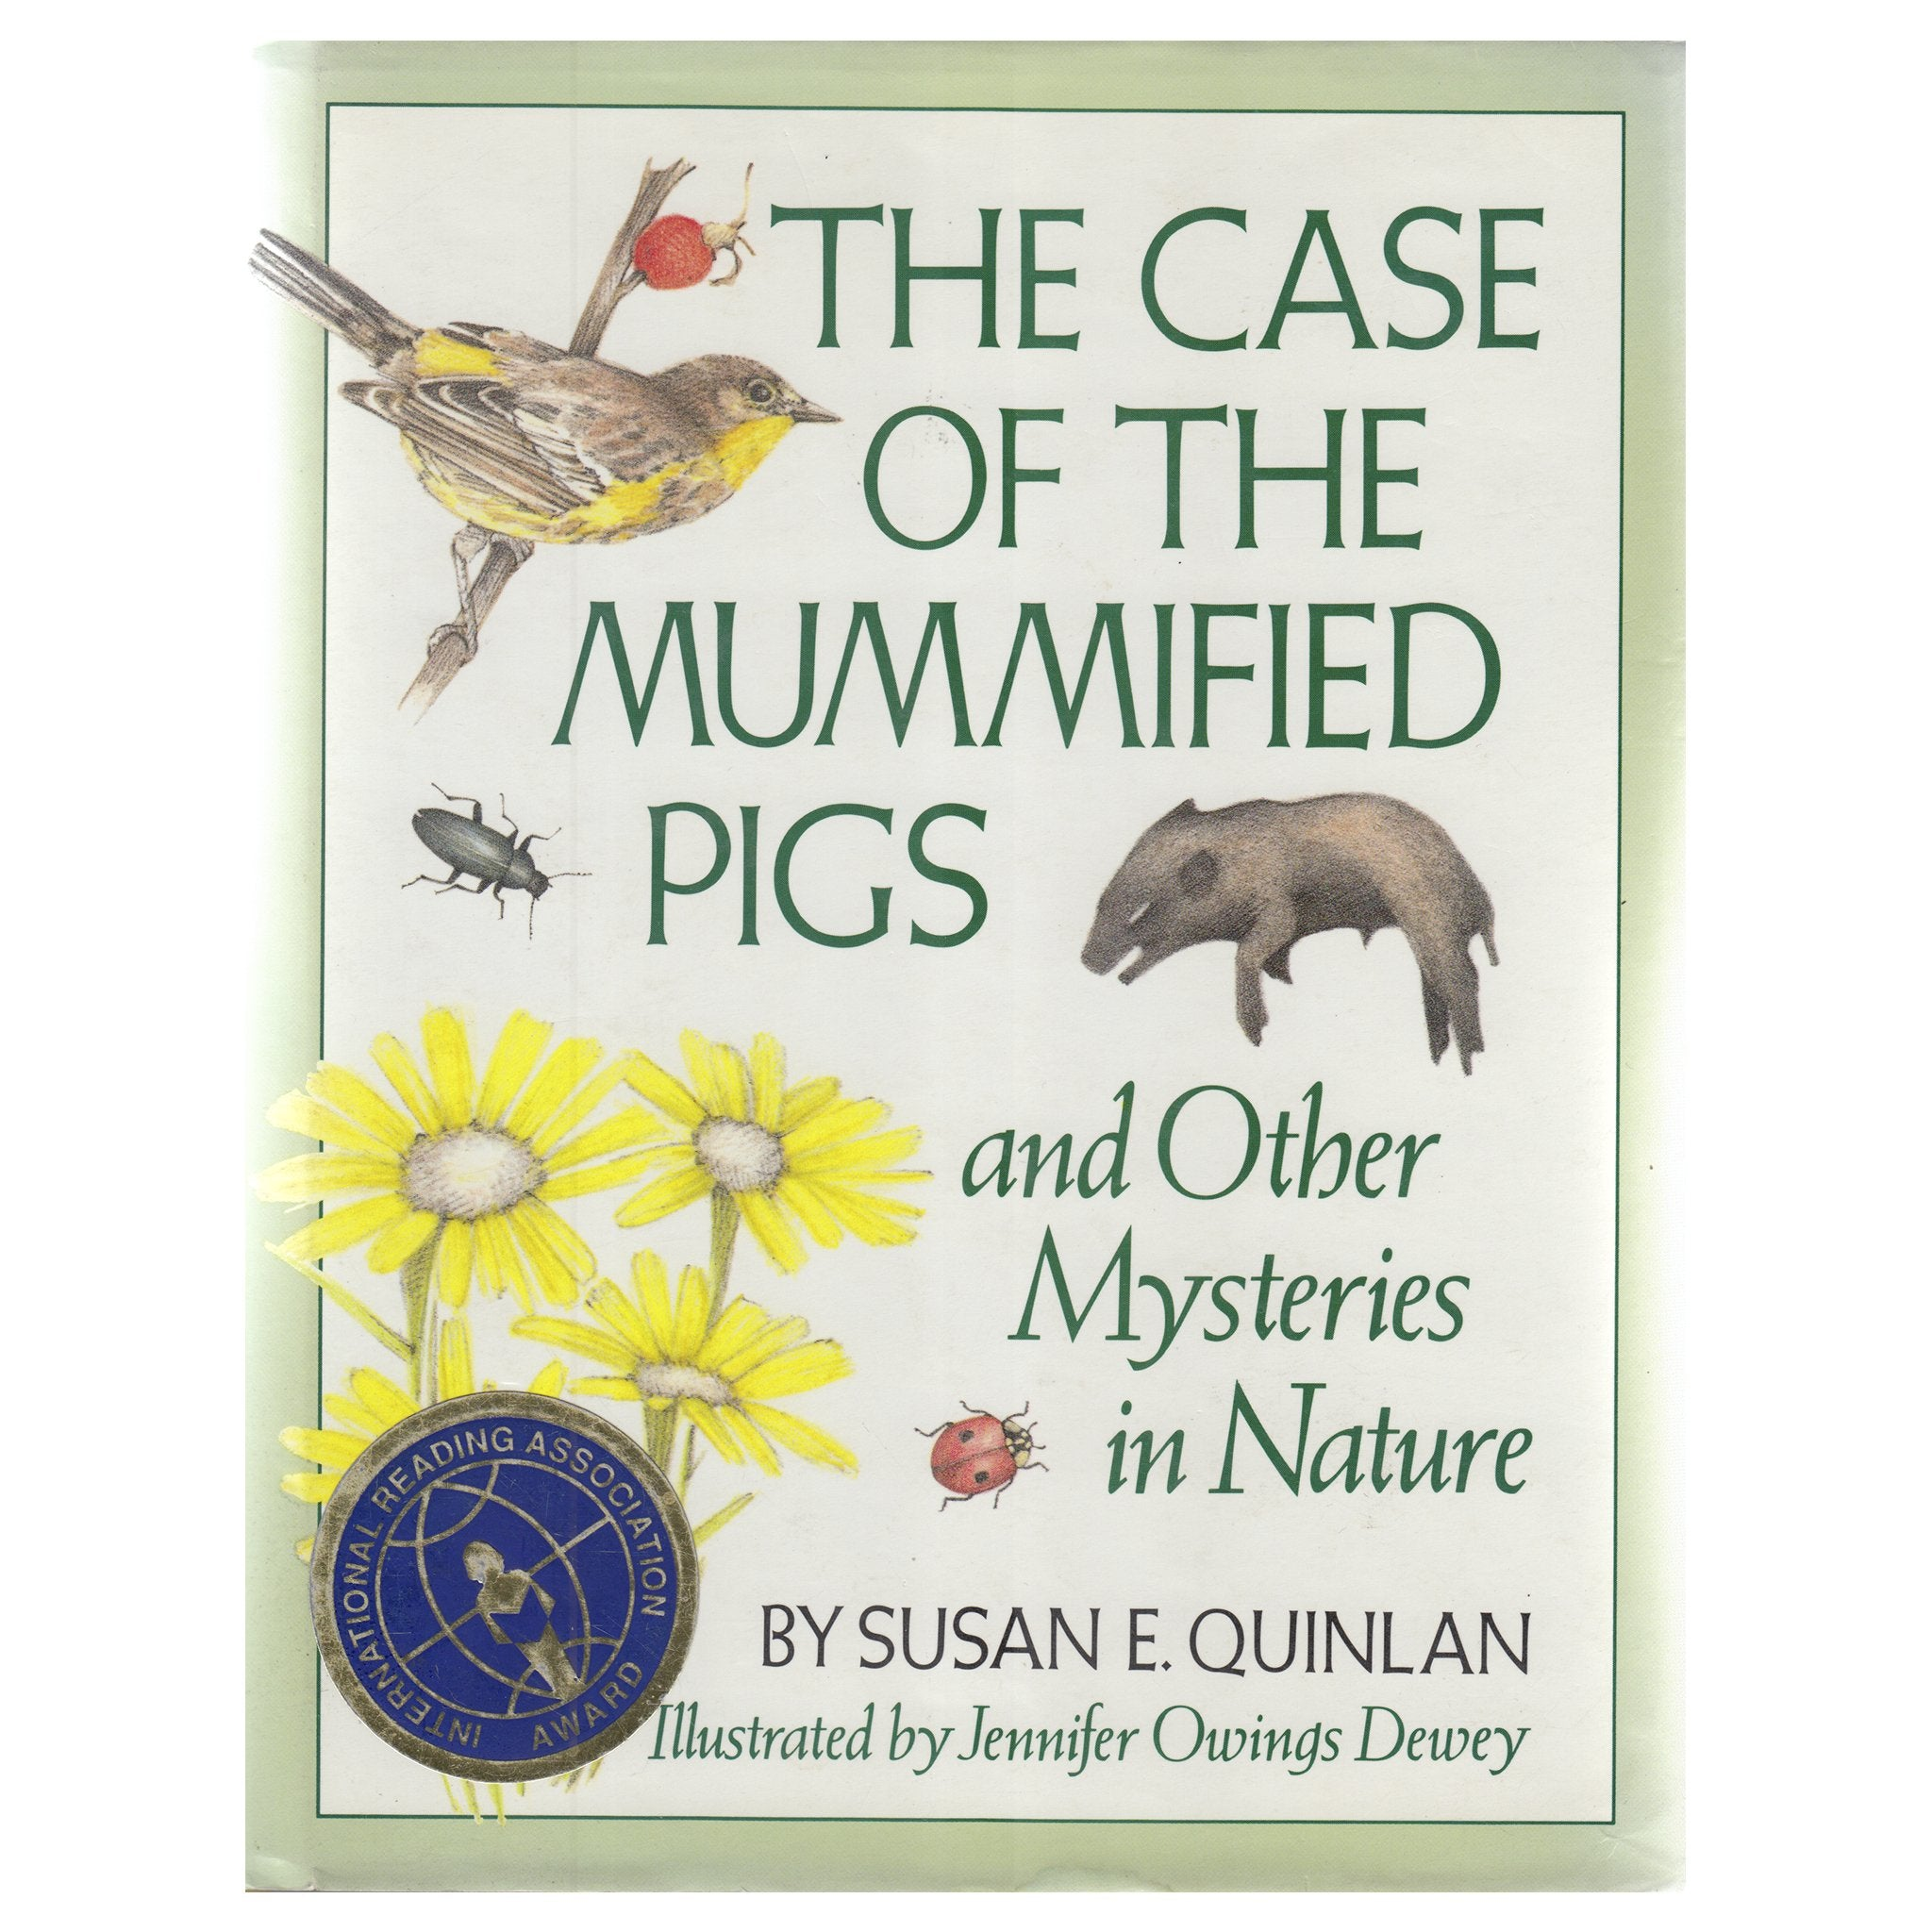 The Case of the Mummified Pigs and Other Mysteries in Nature